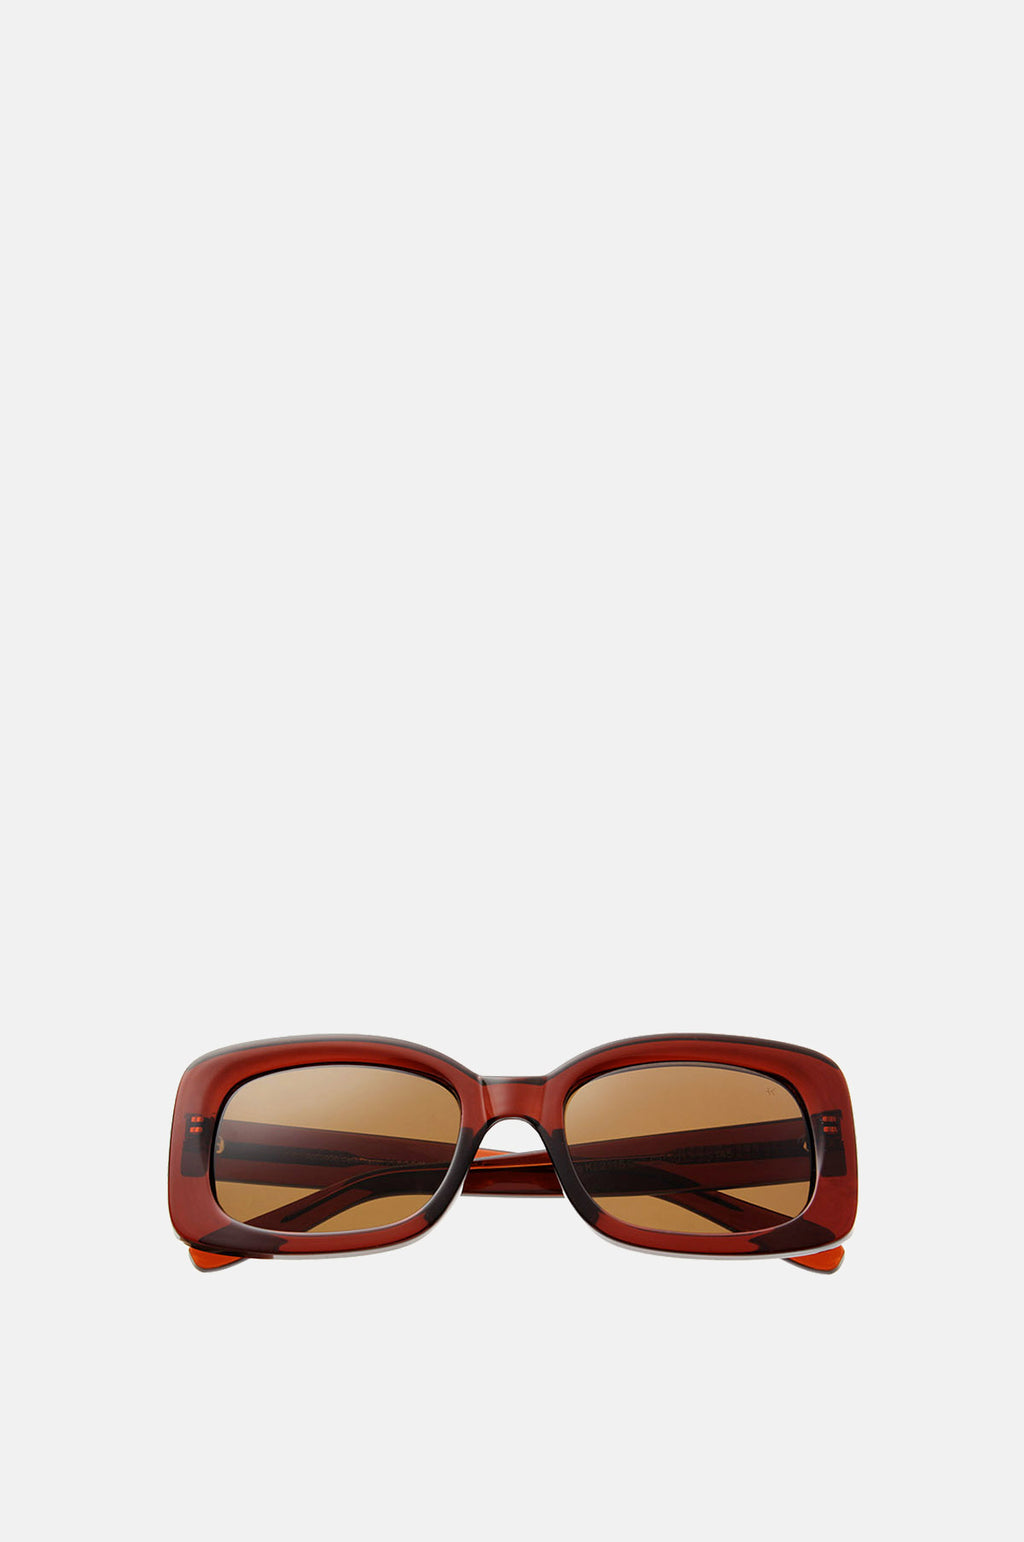 Salo Sunglasses Brown Transparent